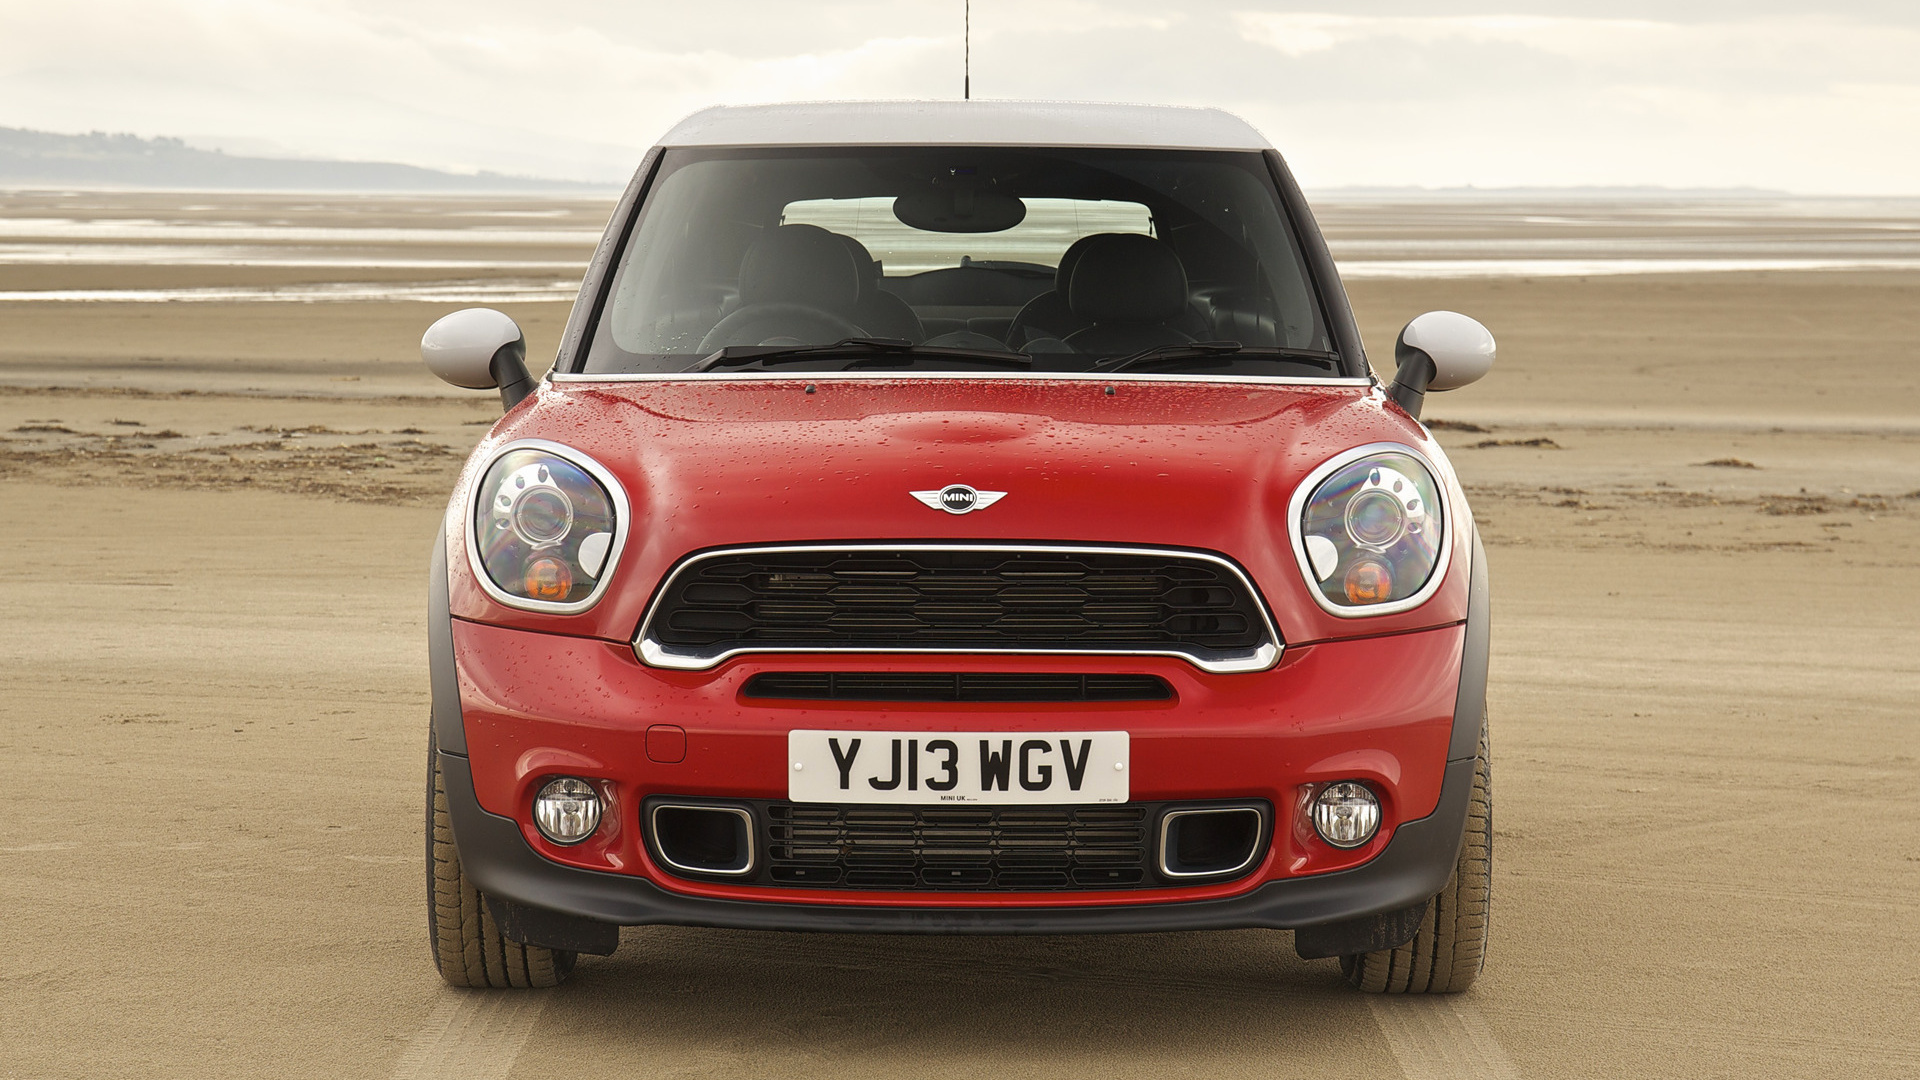 2013 mini cooper s paceman uk wallpapers and hd images car pixel. Black Bedroom Furniture Sets. Home Design Ideas